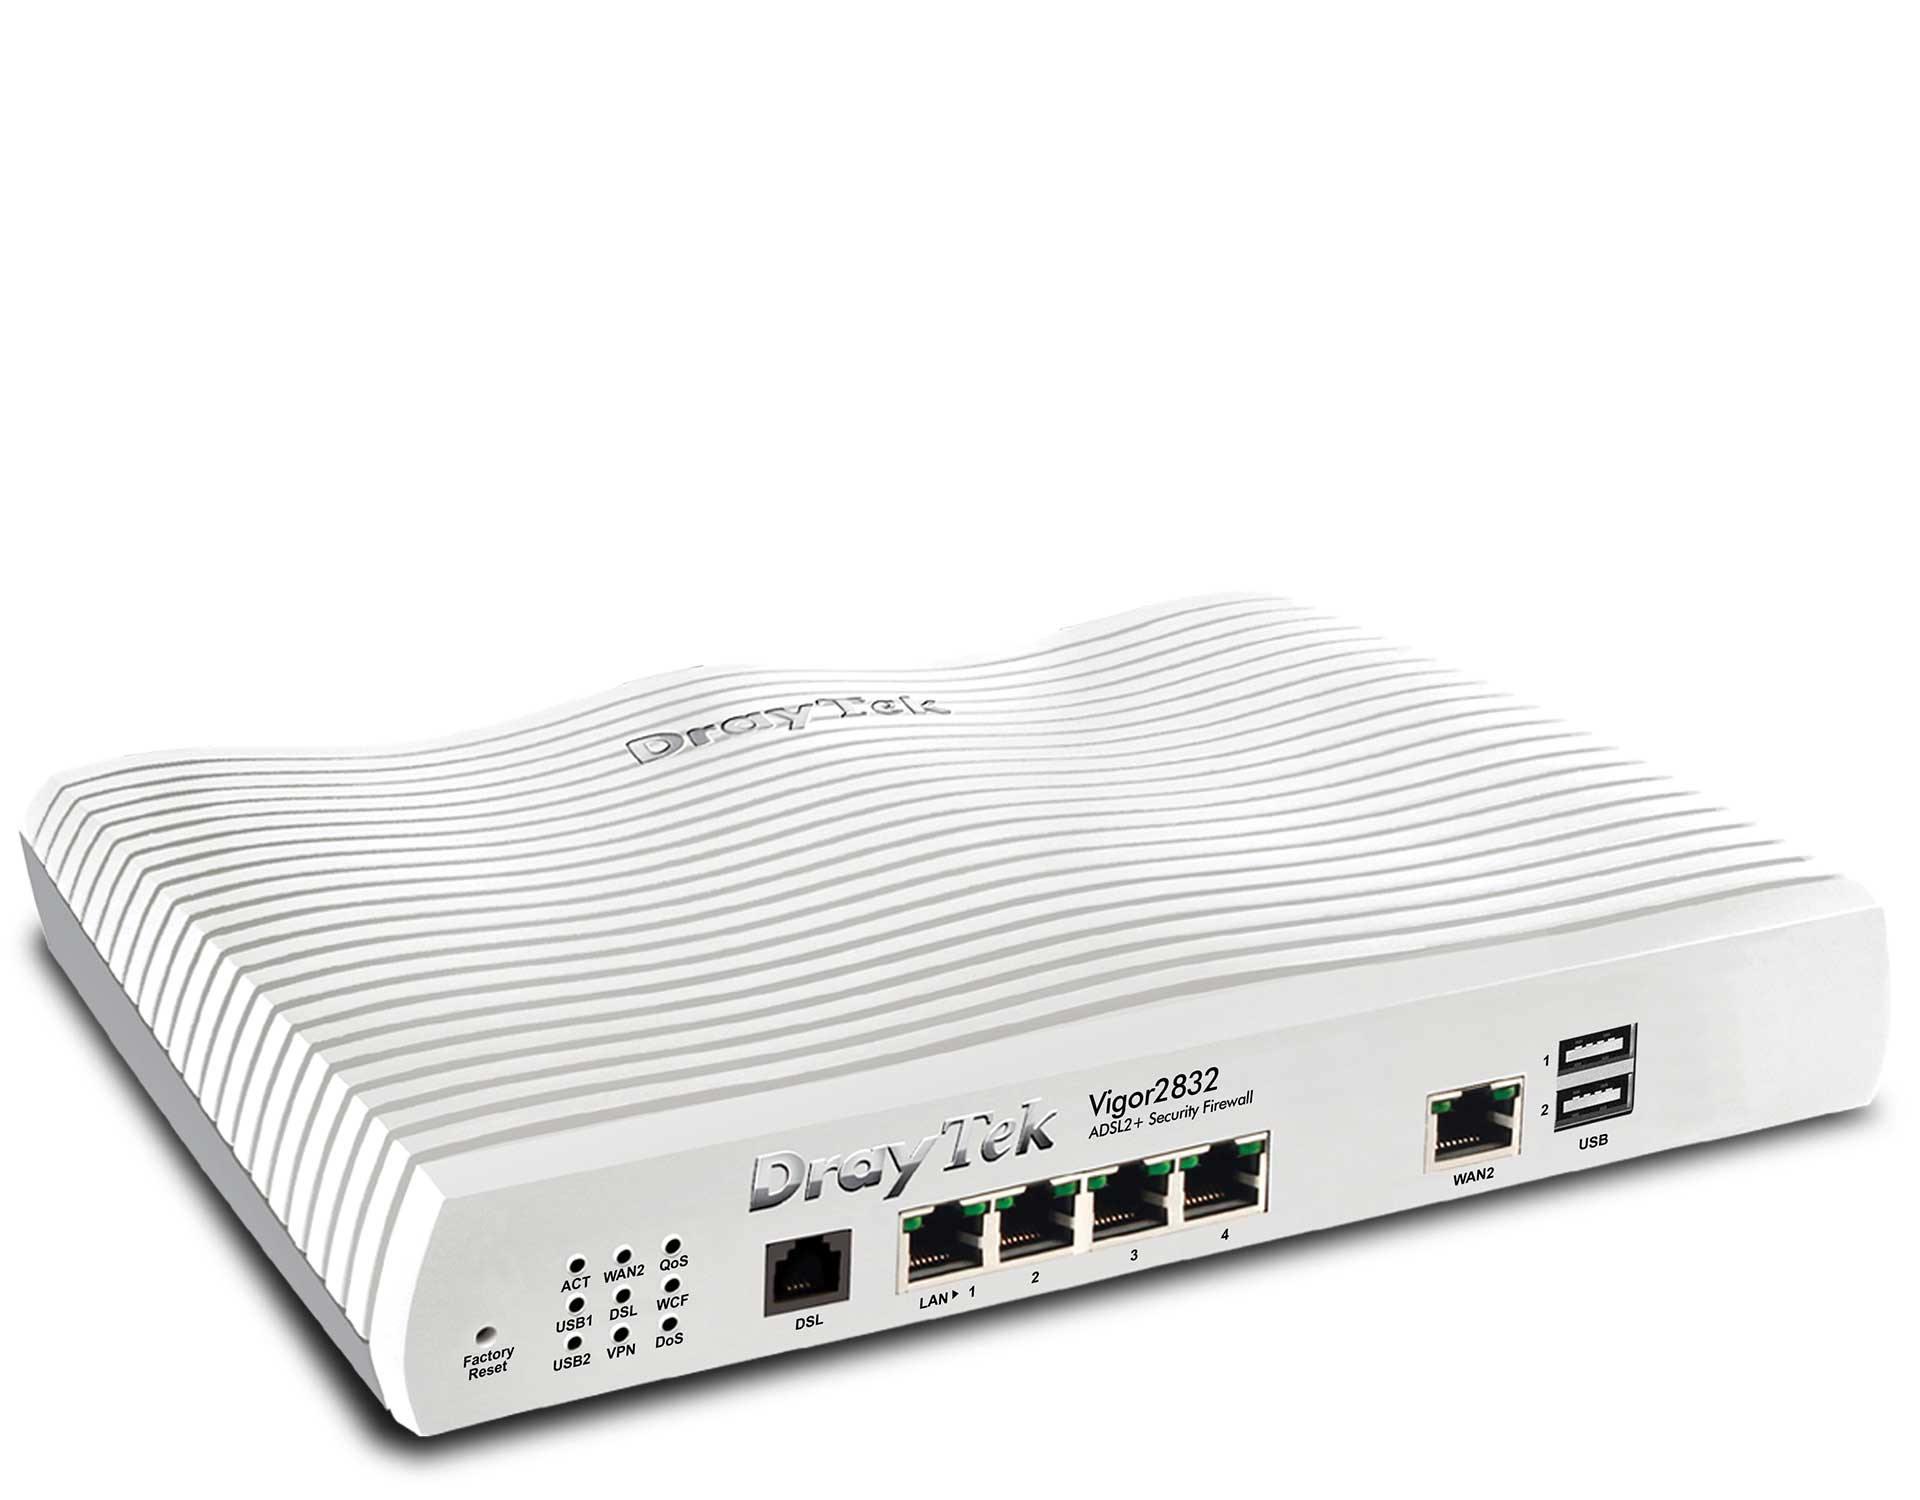 Draytek Vigor2832  Multi Wan ADSL2 Modem Router with 3G/4G via USB